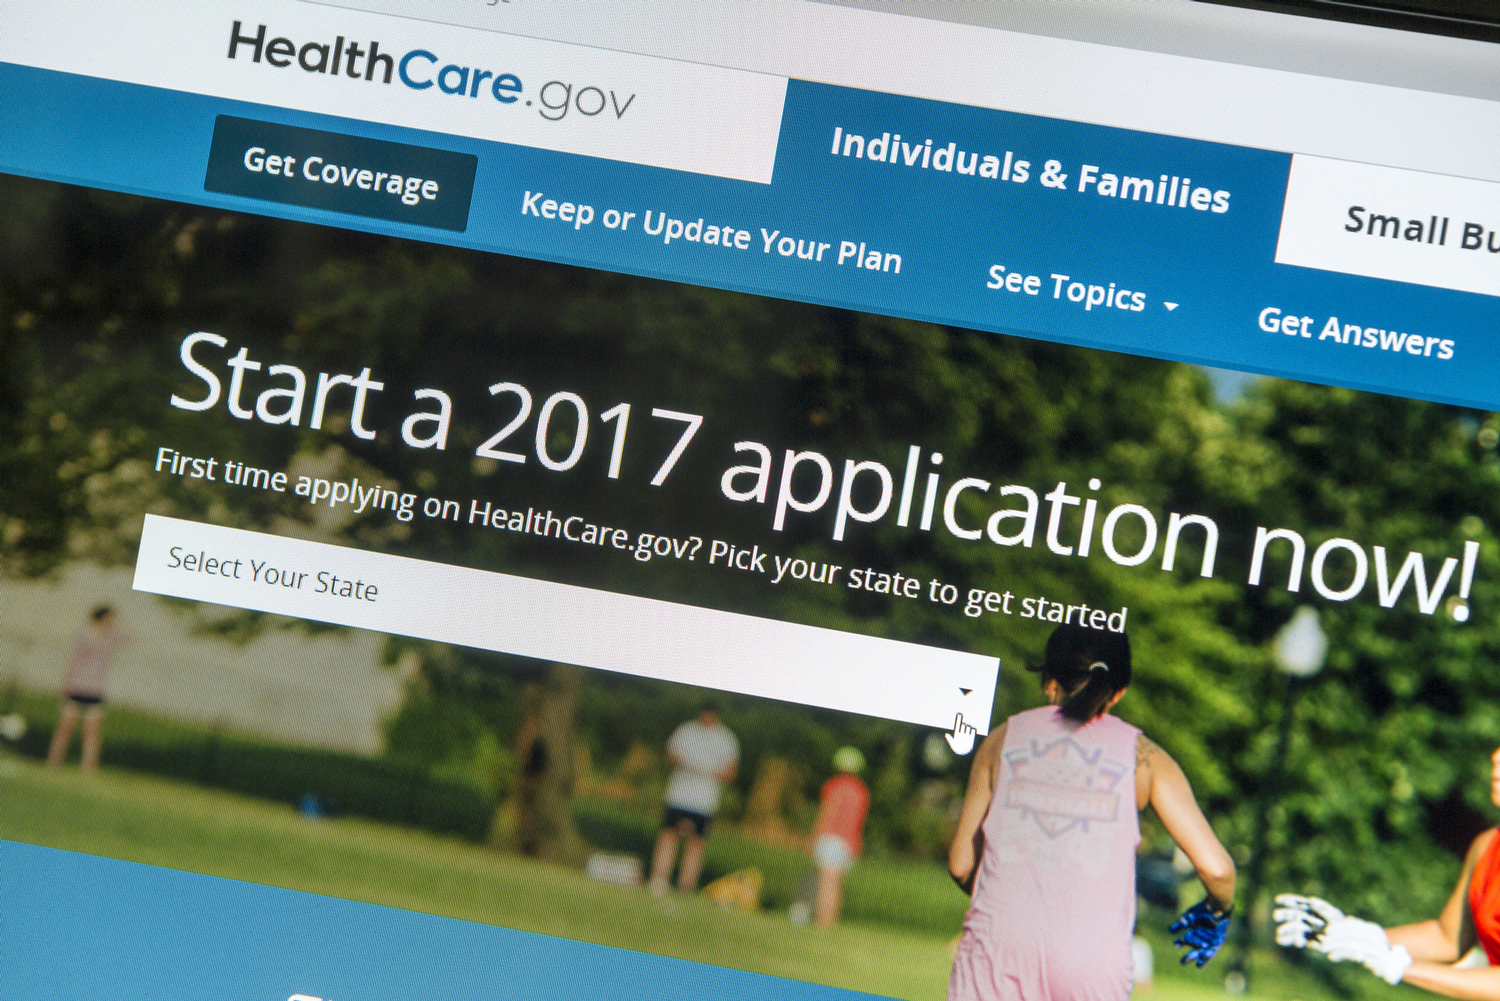 Affordable Care Act sign up screen through Healthcare.gov